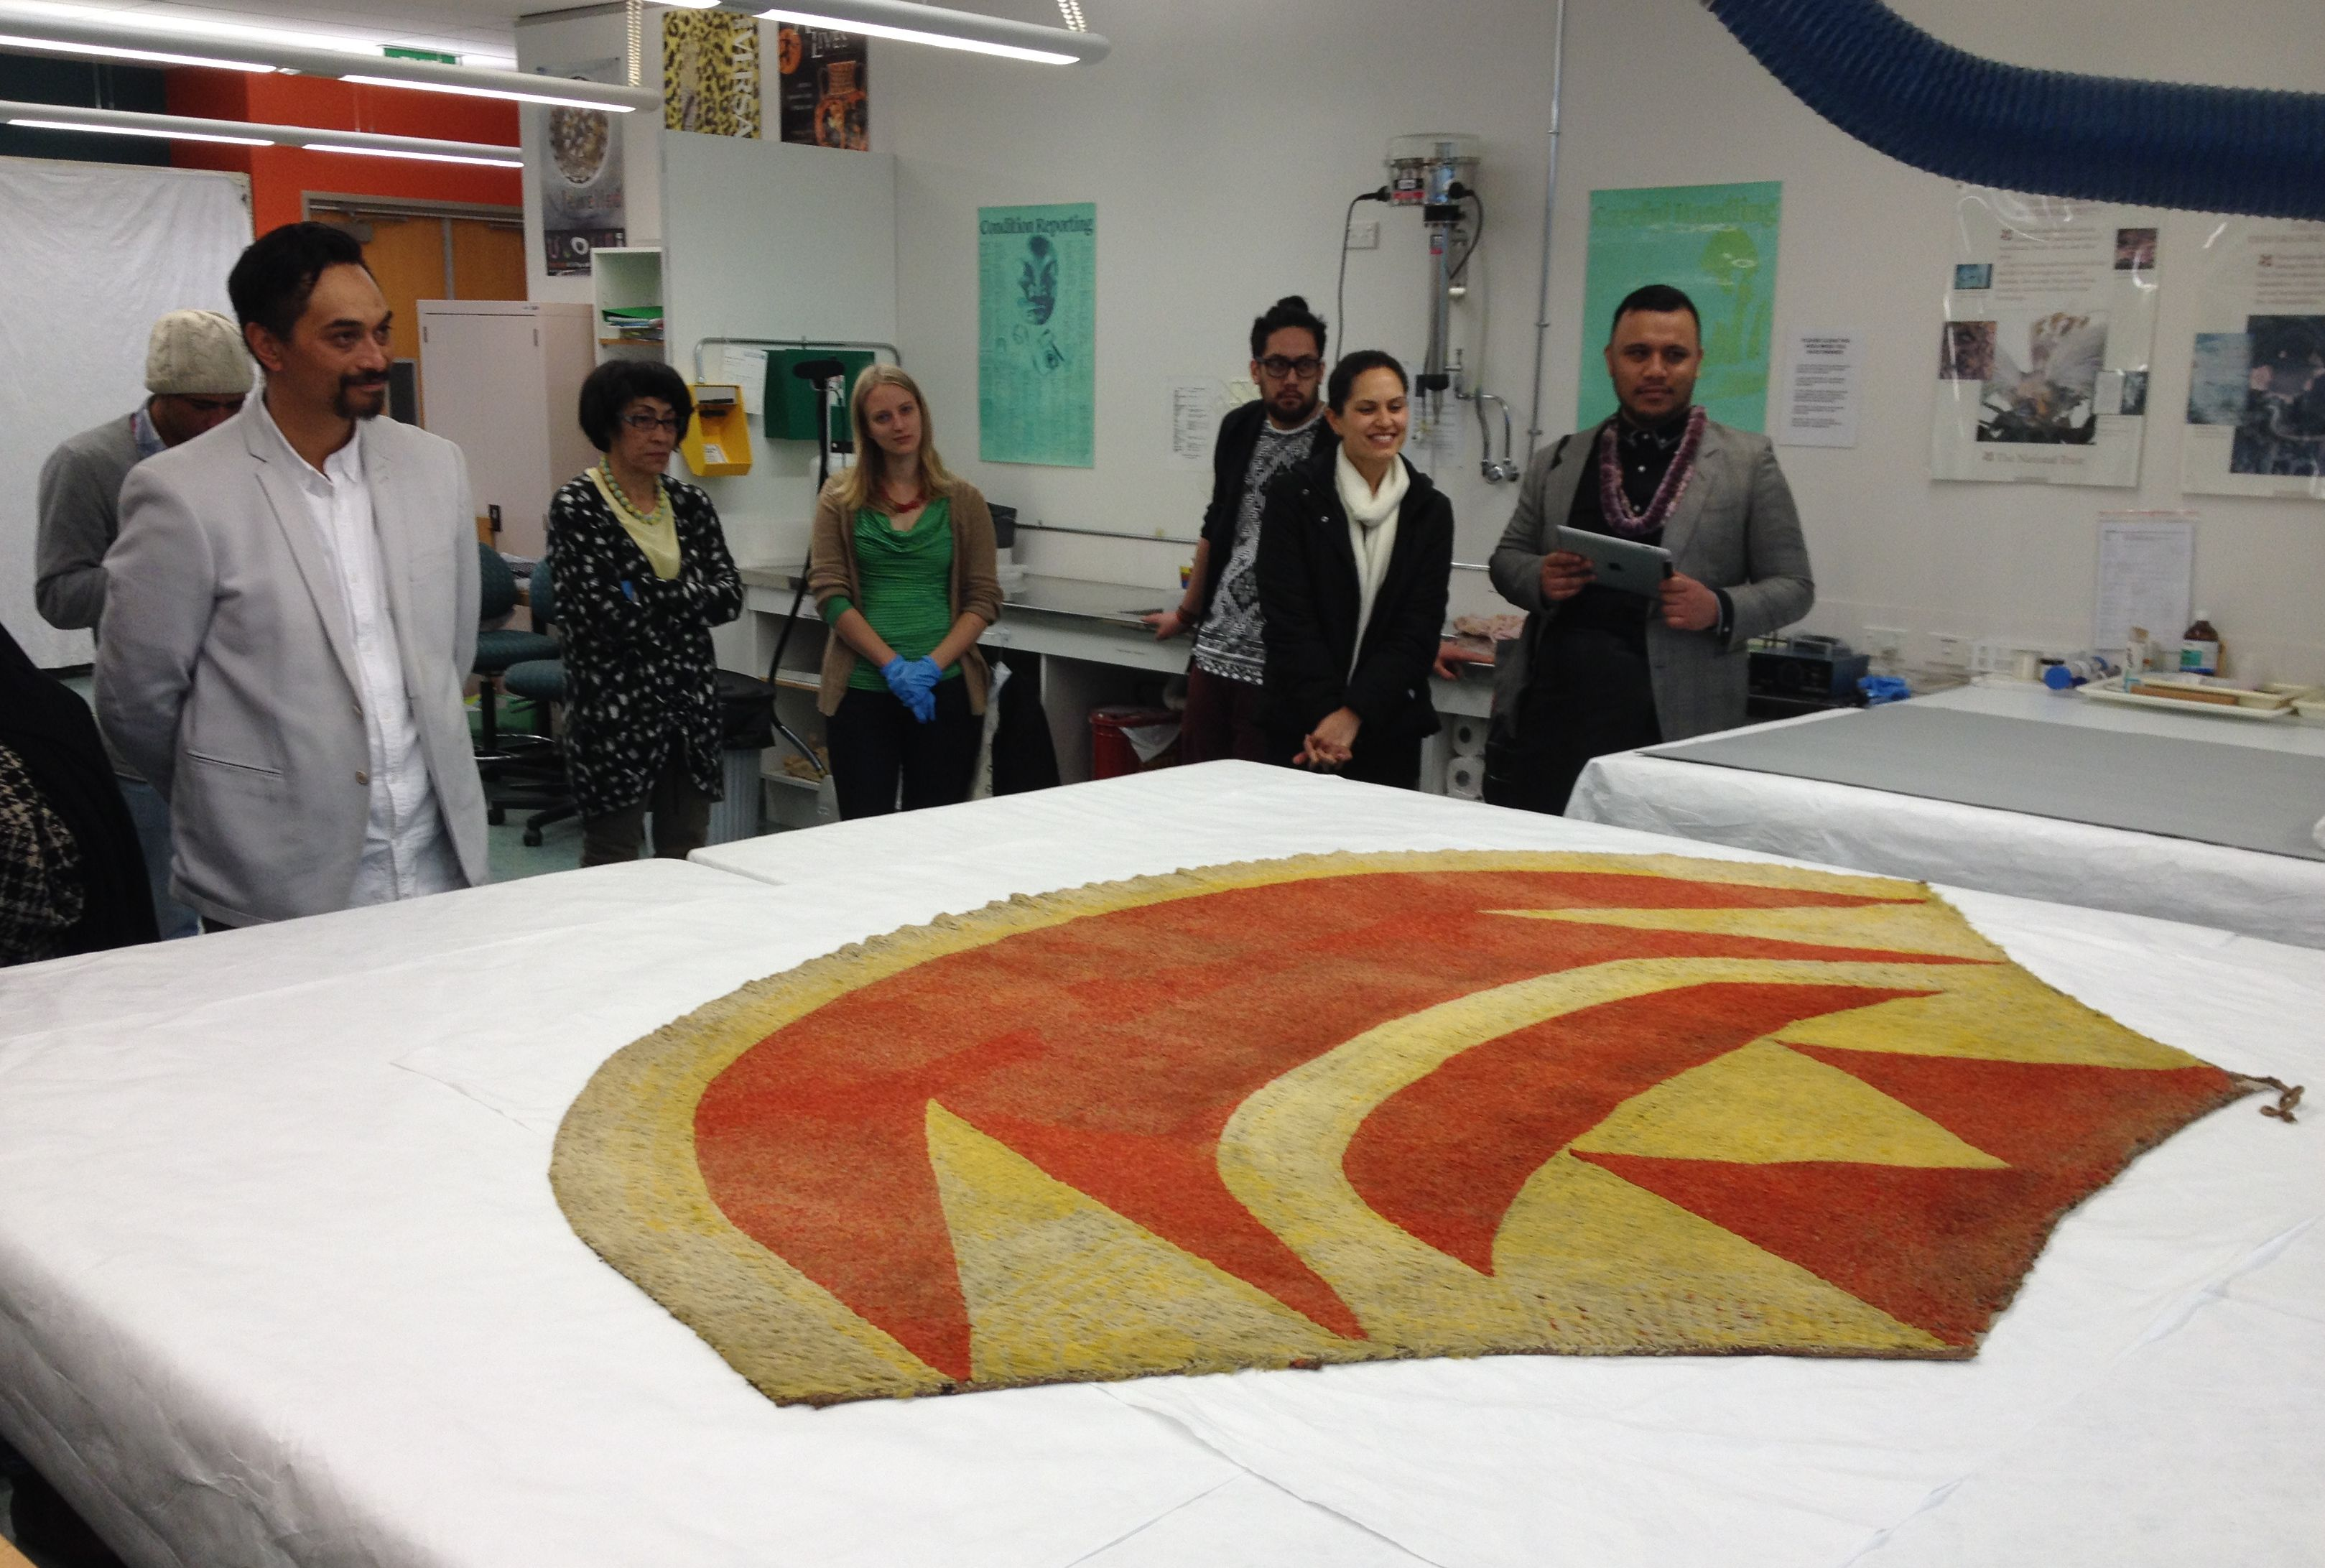 Group of people look at the cloak lying on a table